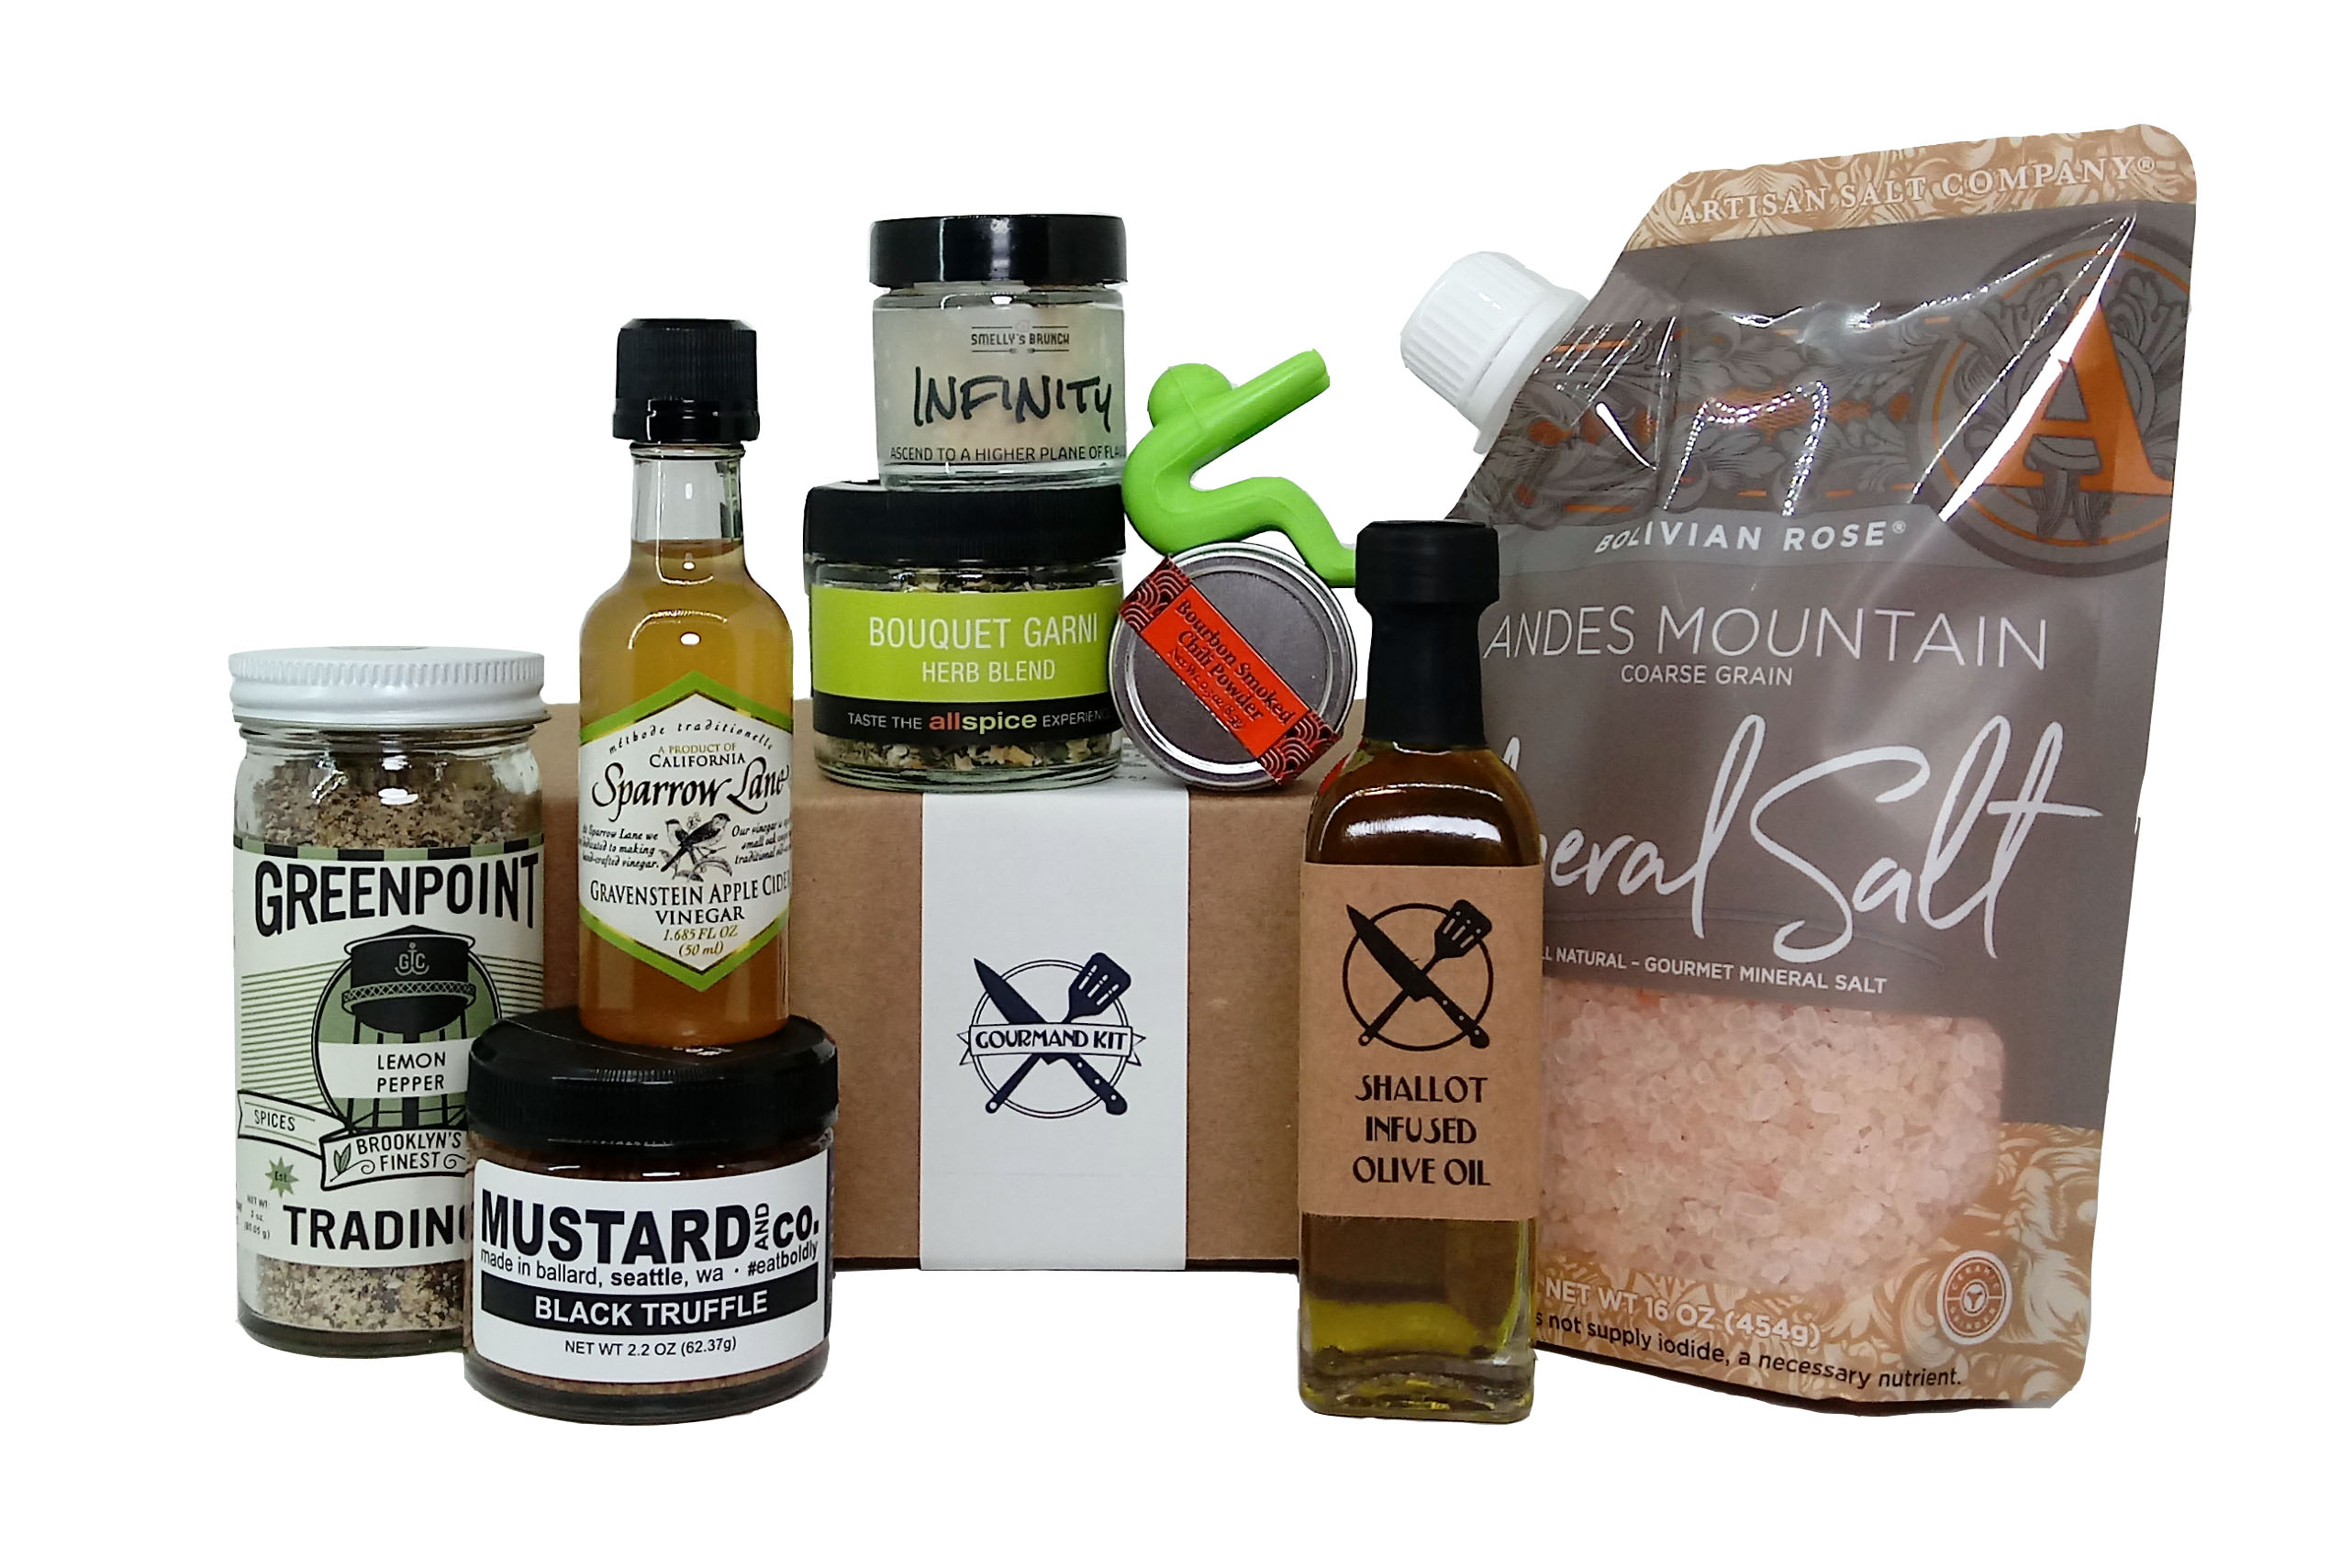 A cooking gift box surrounded by all the ingredients included